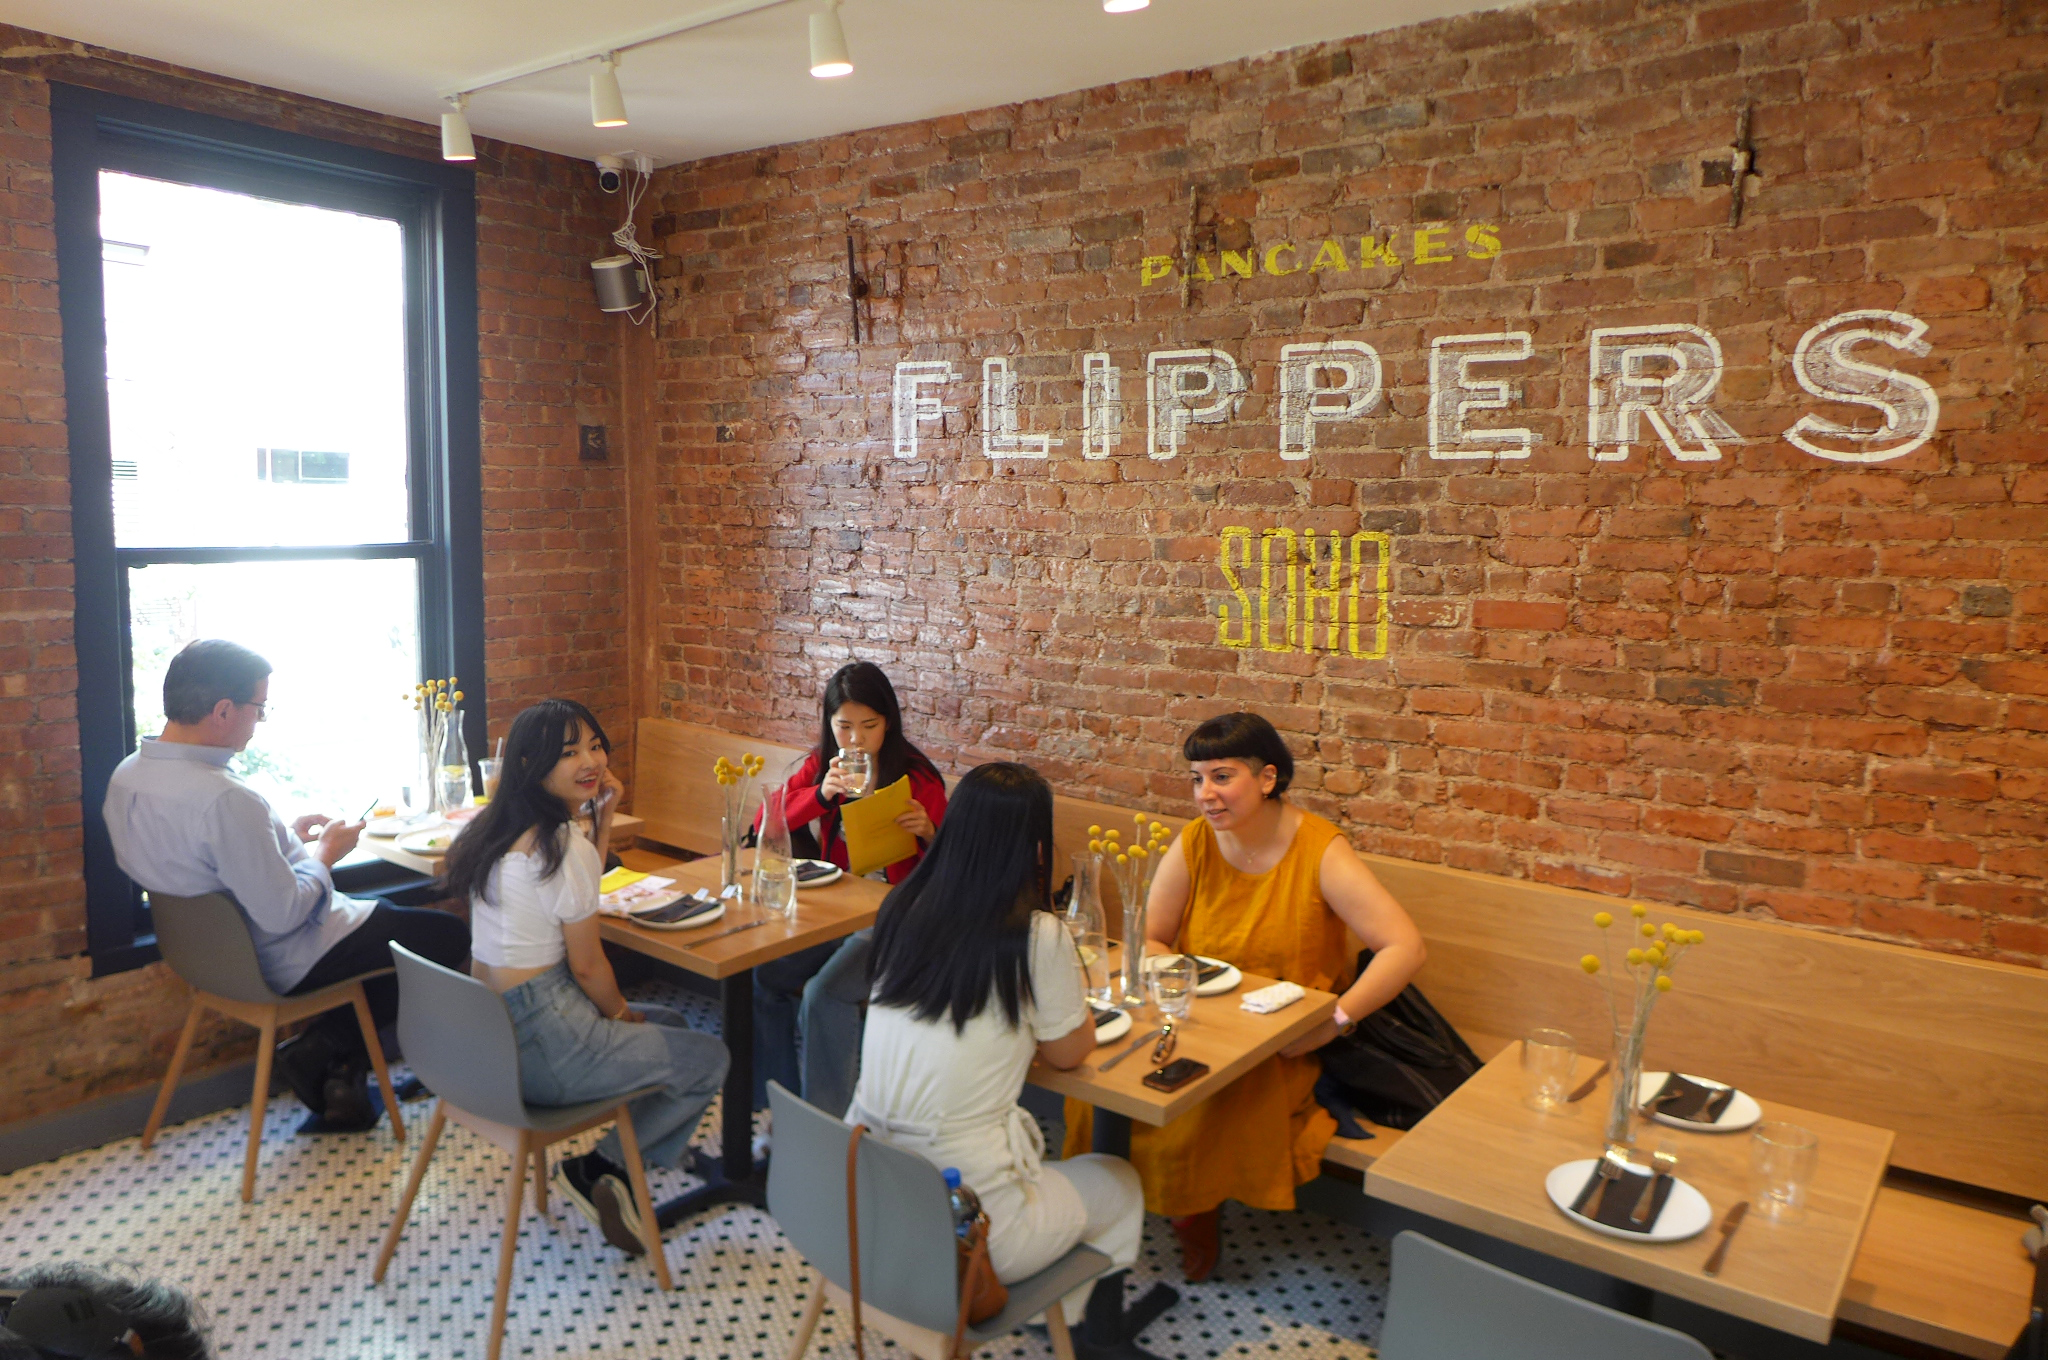 Japanese Chain Flipper's Pillowy Pancakes Delight, But Not Much Else Does